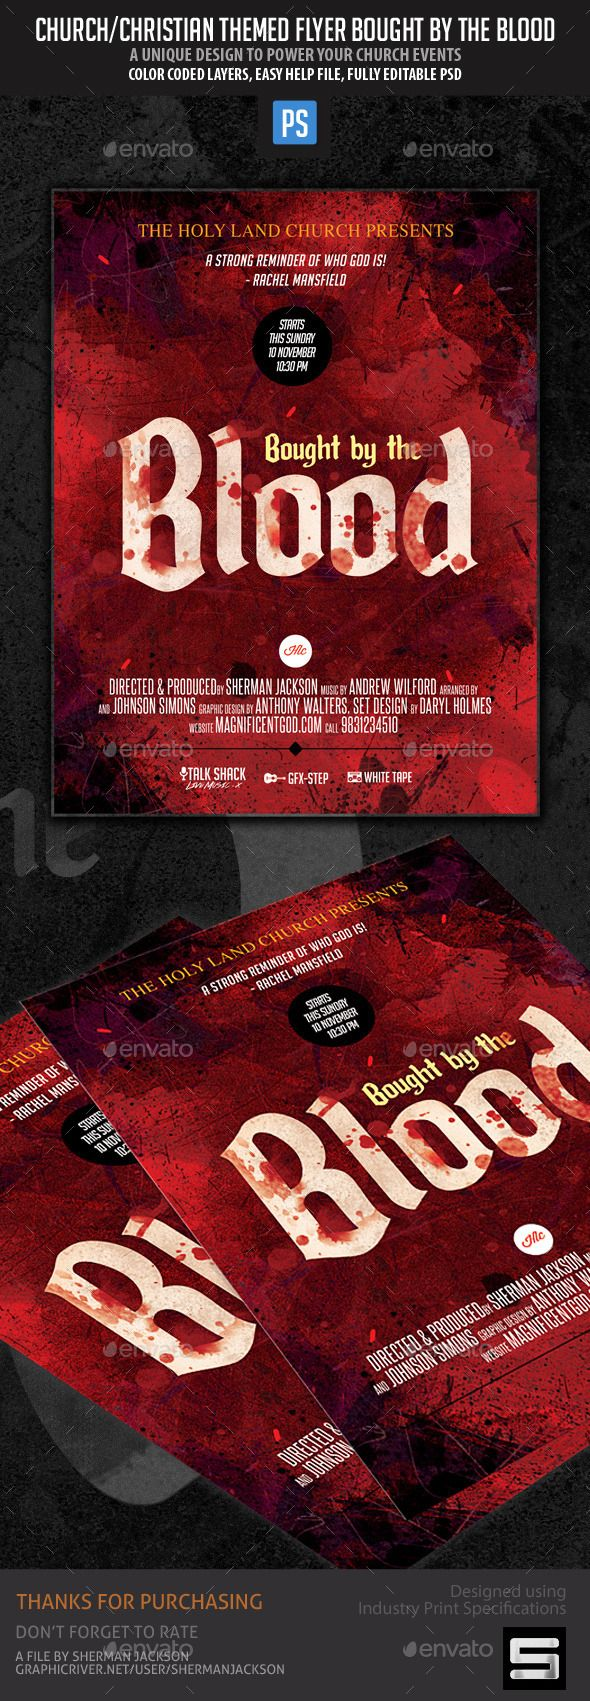 best images about top church flyer template bought by the blood church theme flyer poster